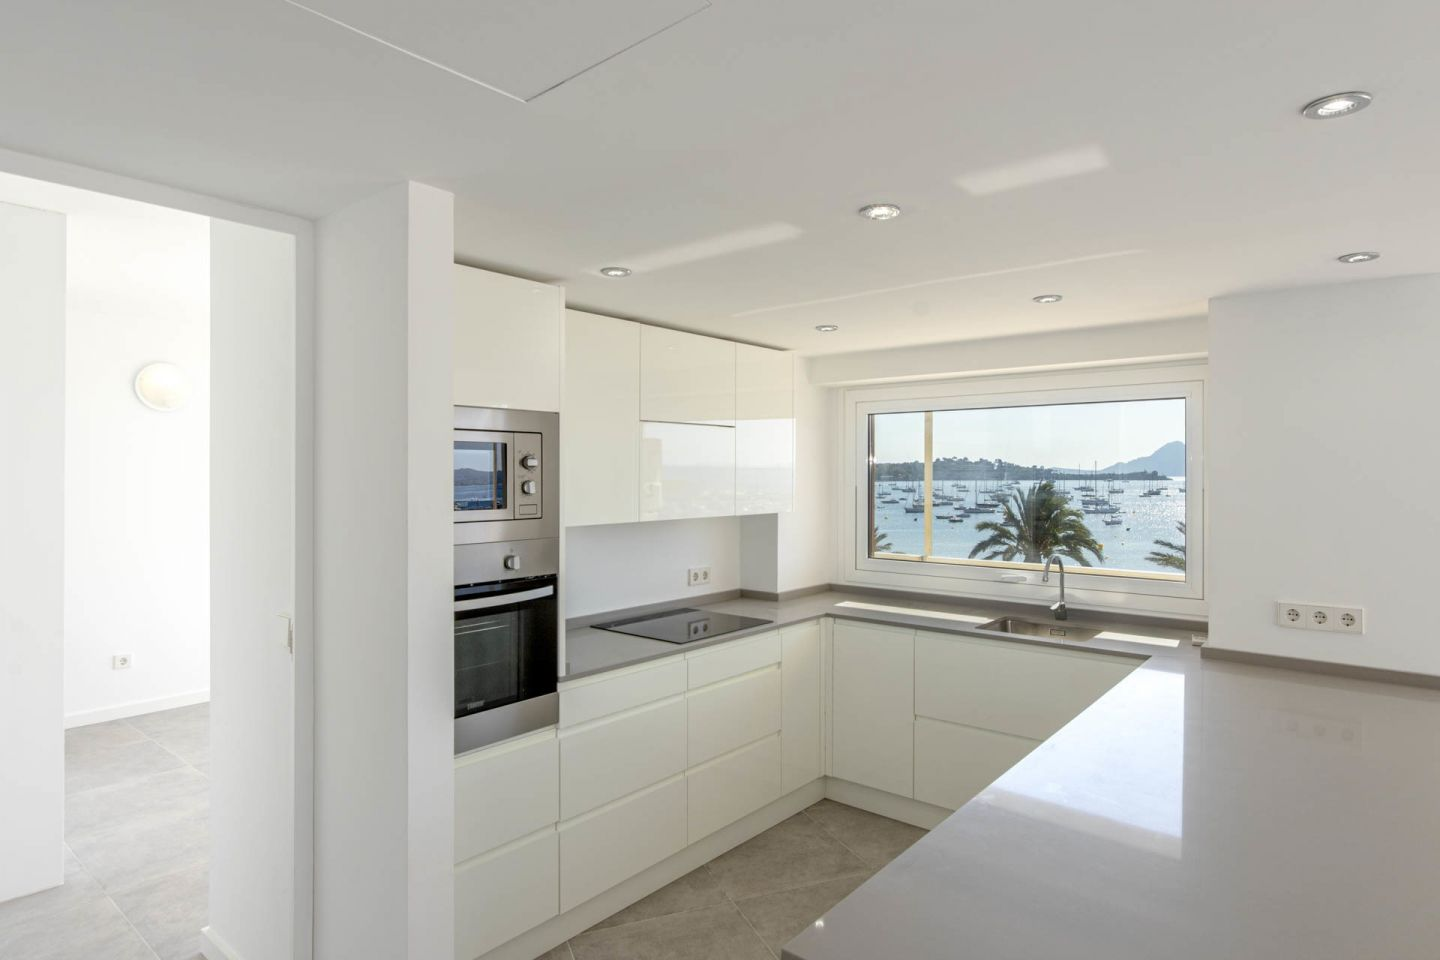 4 Bed Apartment for sale in PUERTO POLLENSA 7